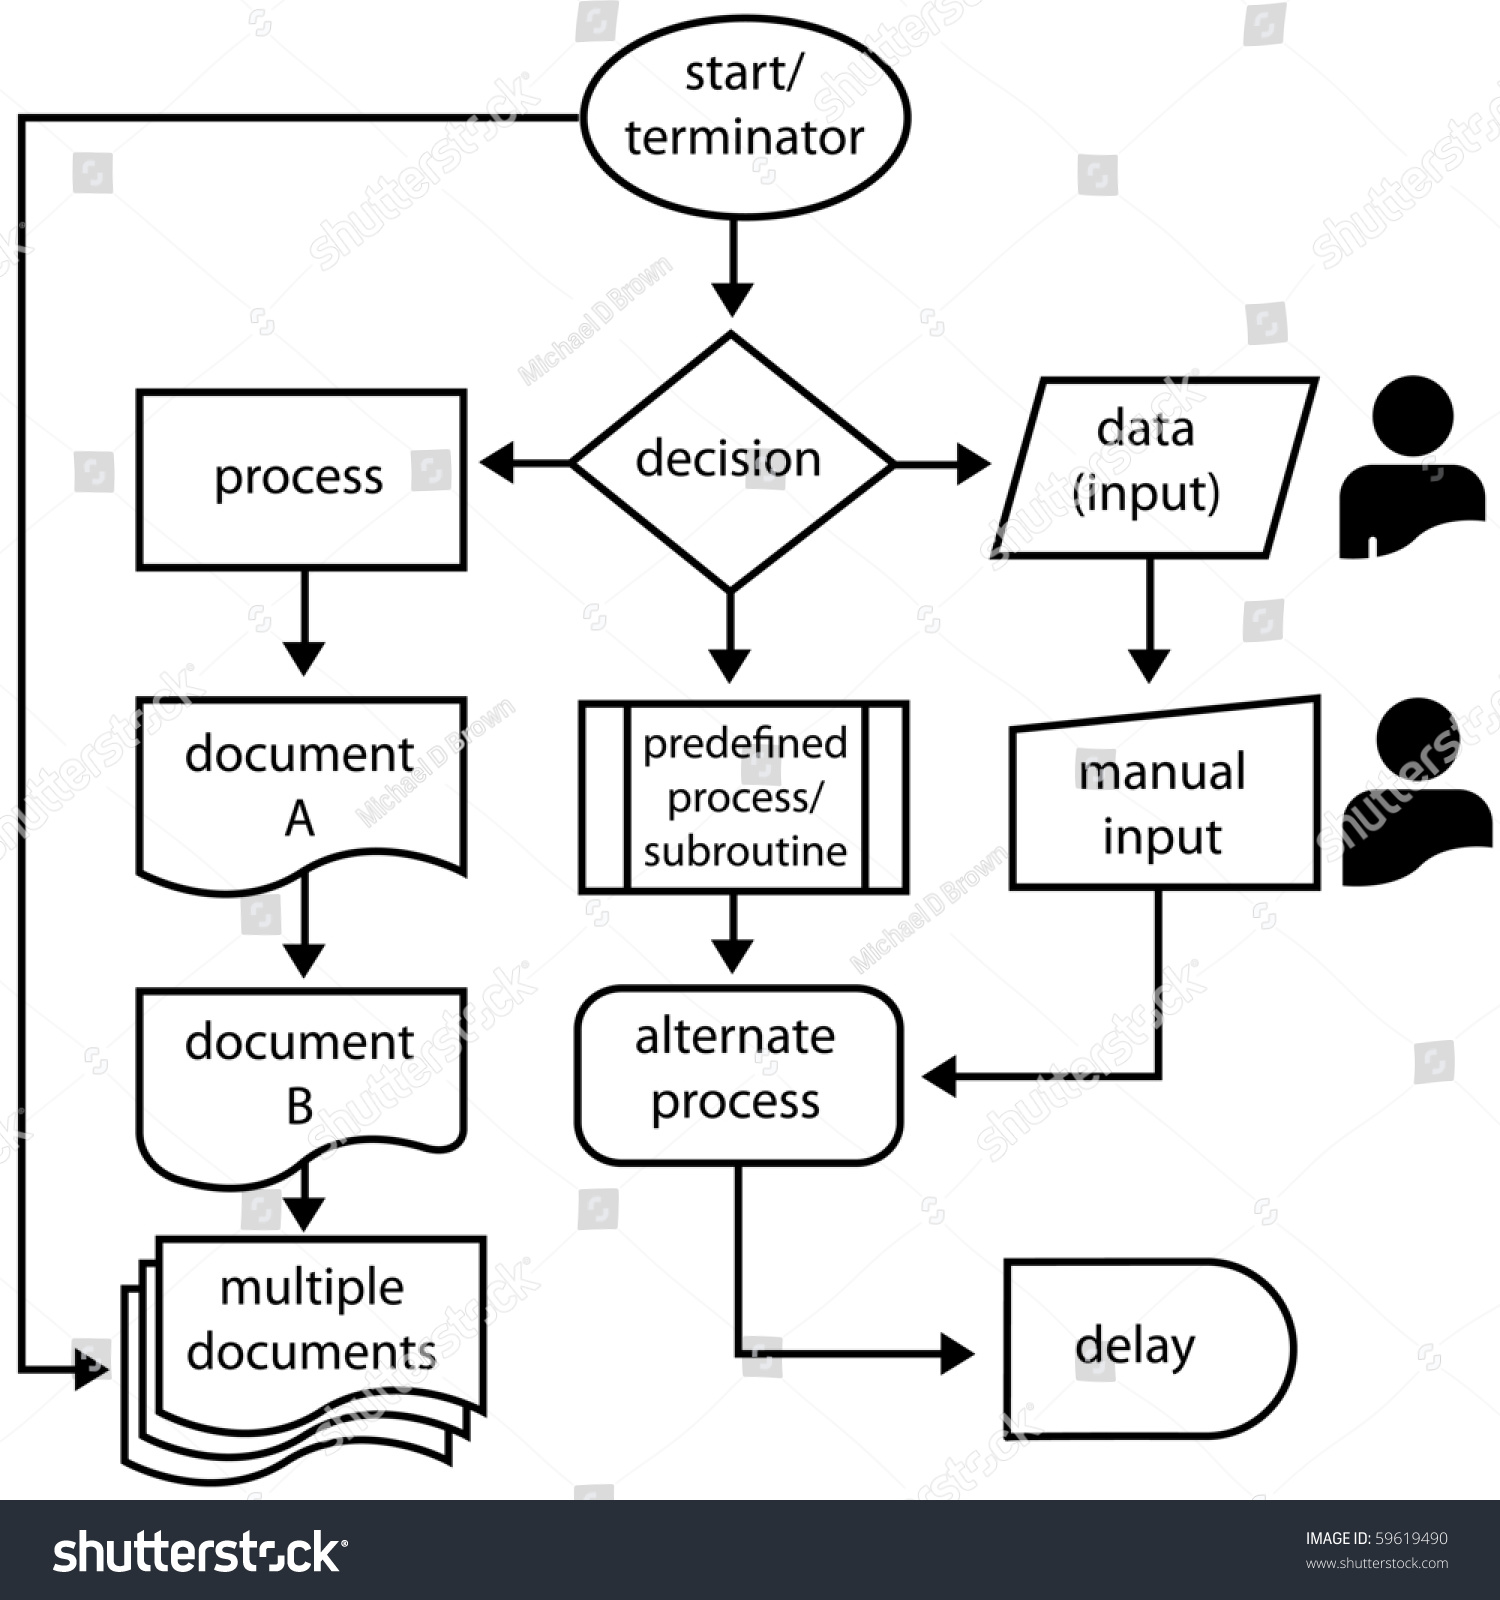 Flowchart Symbols with labels and Flow Arrows for computer and process  management.